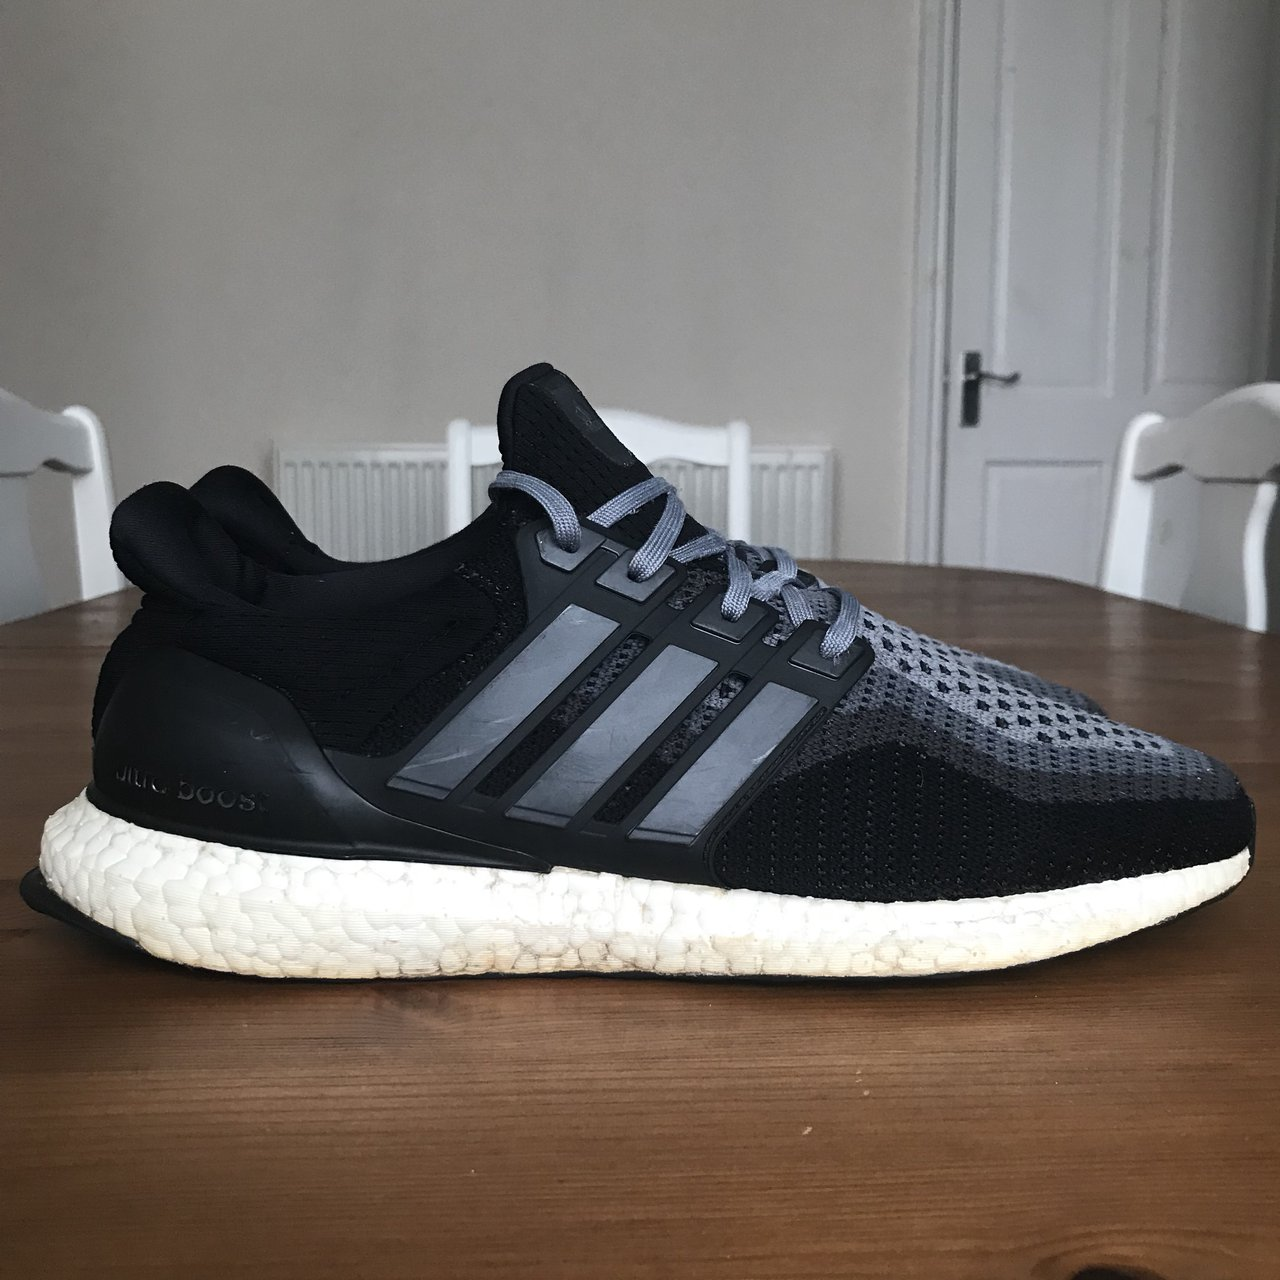 Adidas Ultra Boost Black White Grey UK 10 Great pair d193f150f